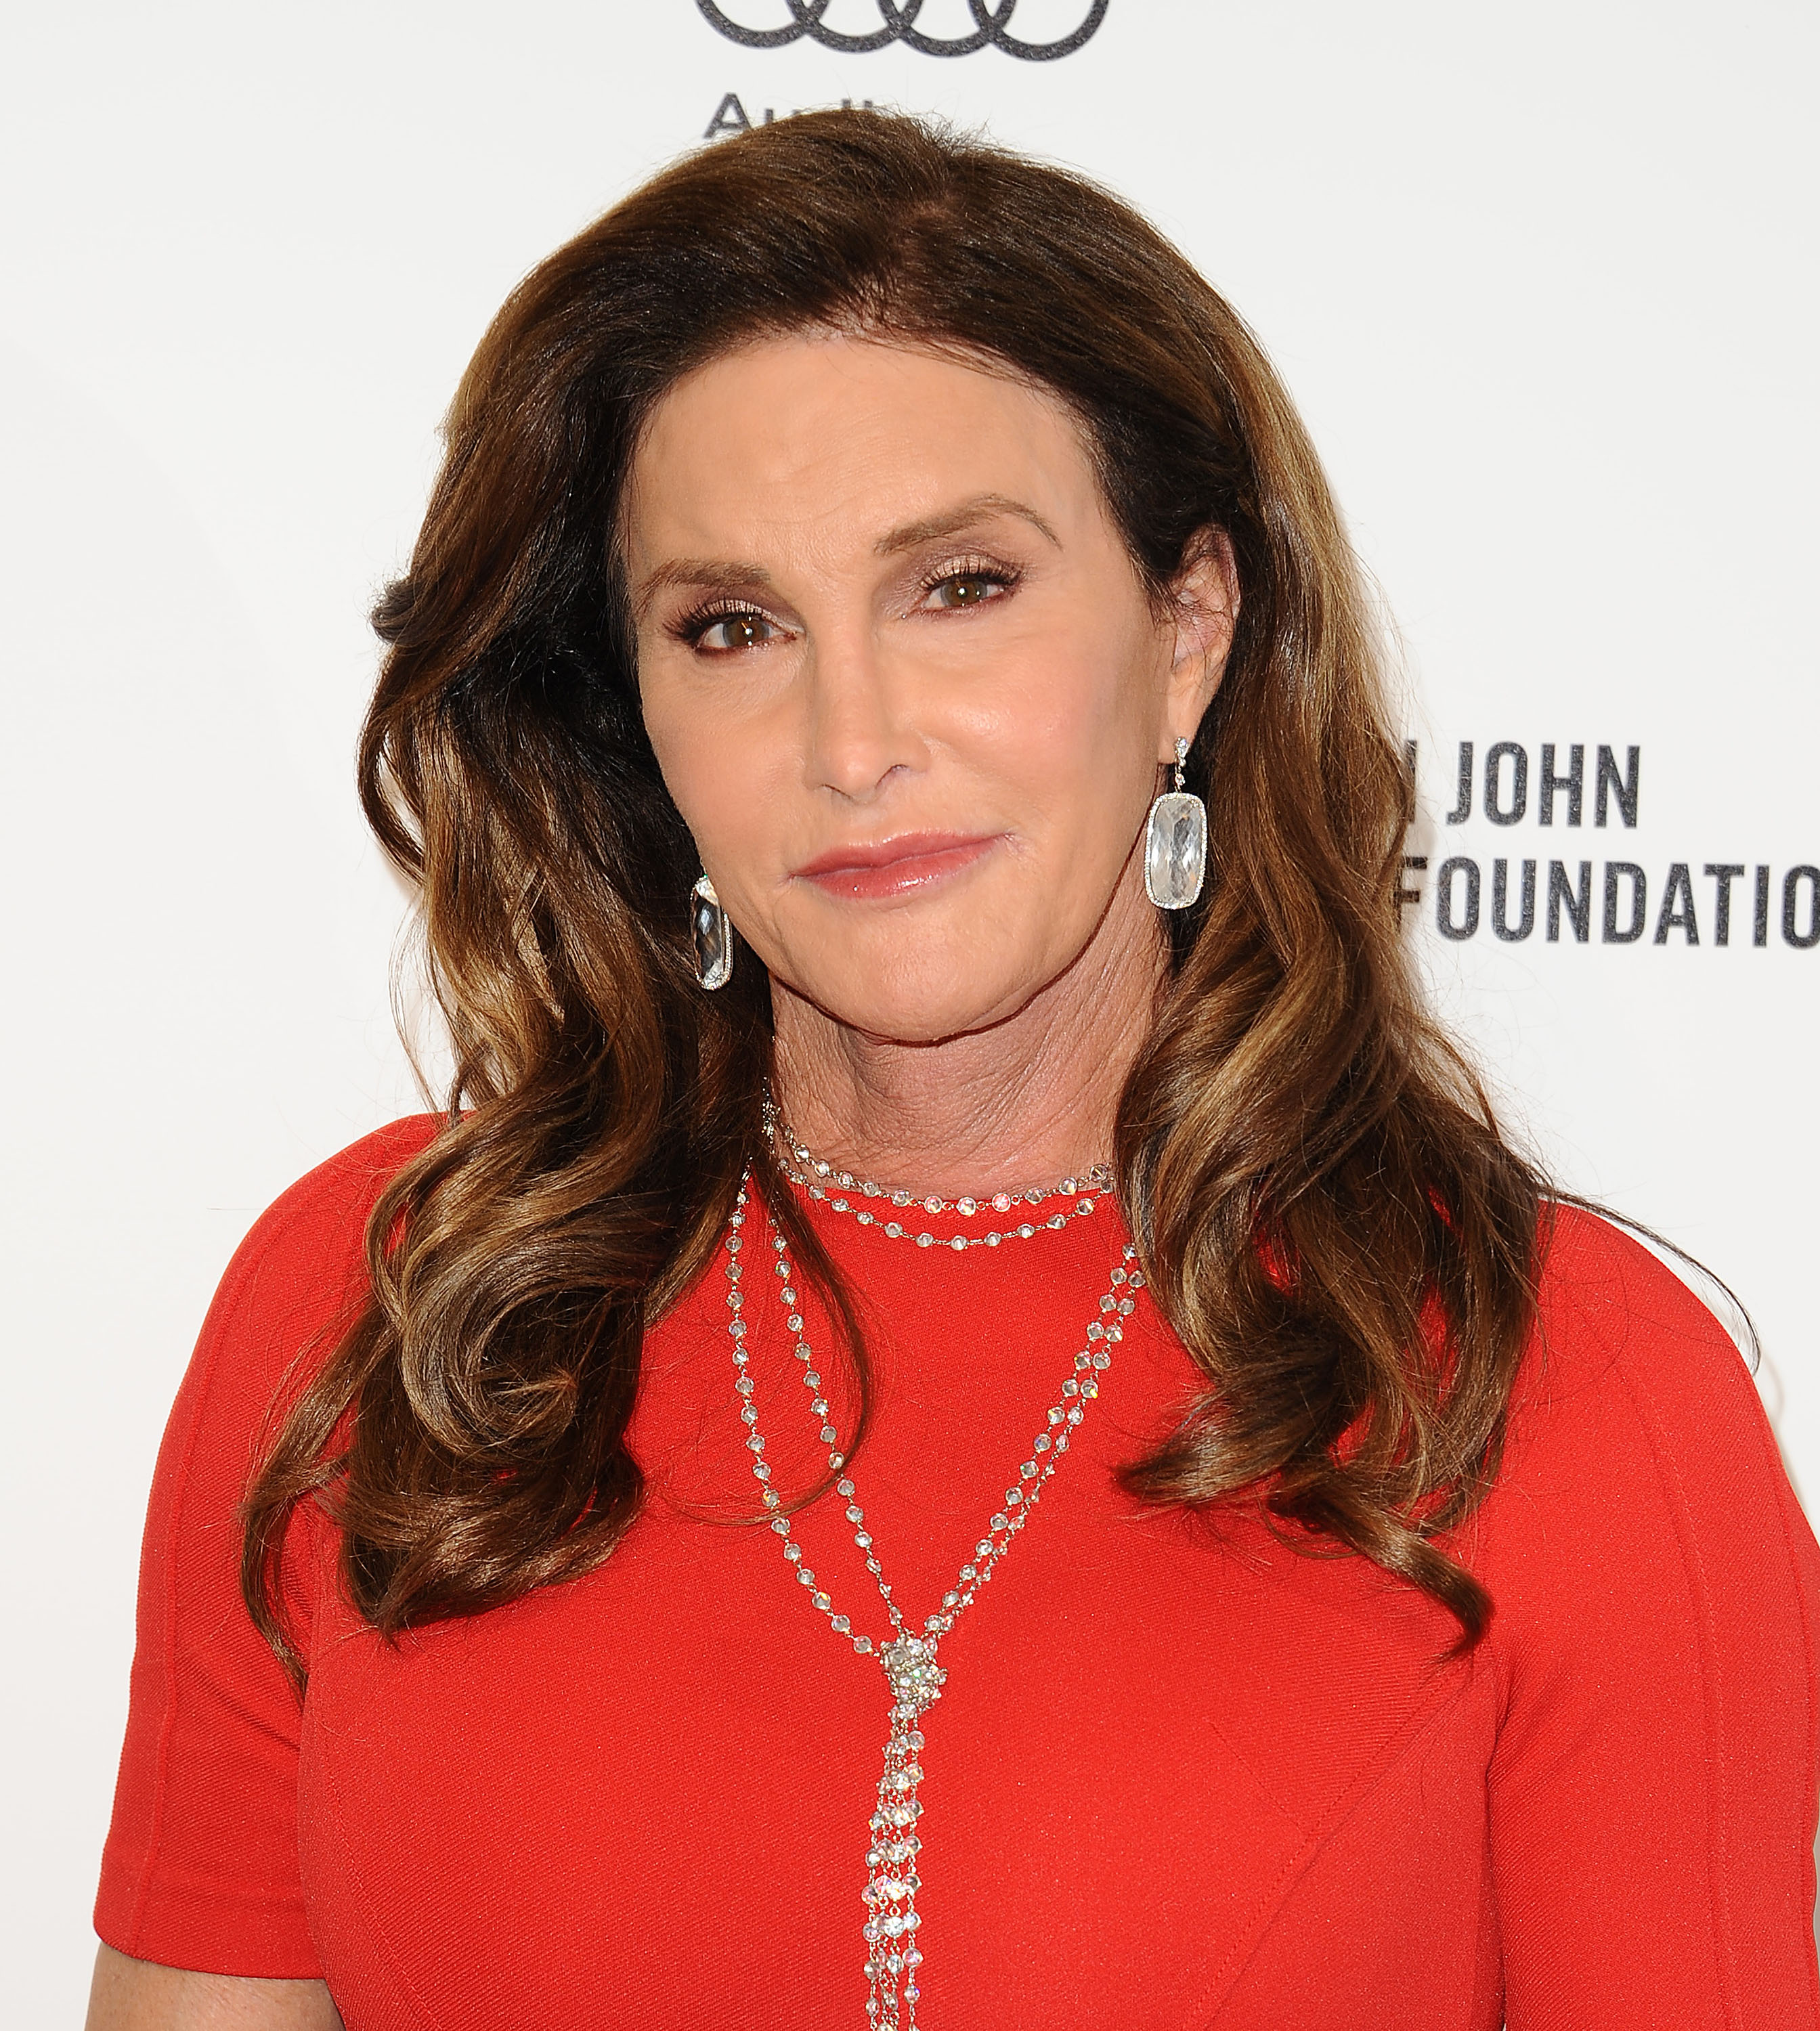 Caitlyn Jenner attends the 24th annual Elton John AIDS Foundation's Oscar viewing party on Feb. 28, 2016 in West Hollywood, California.